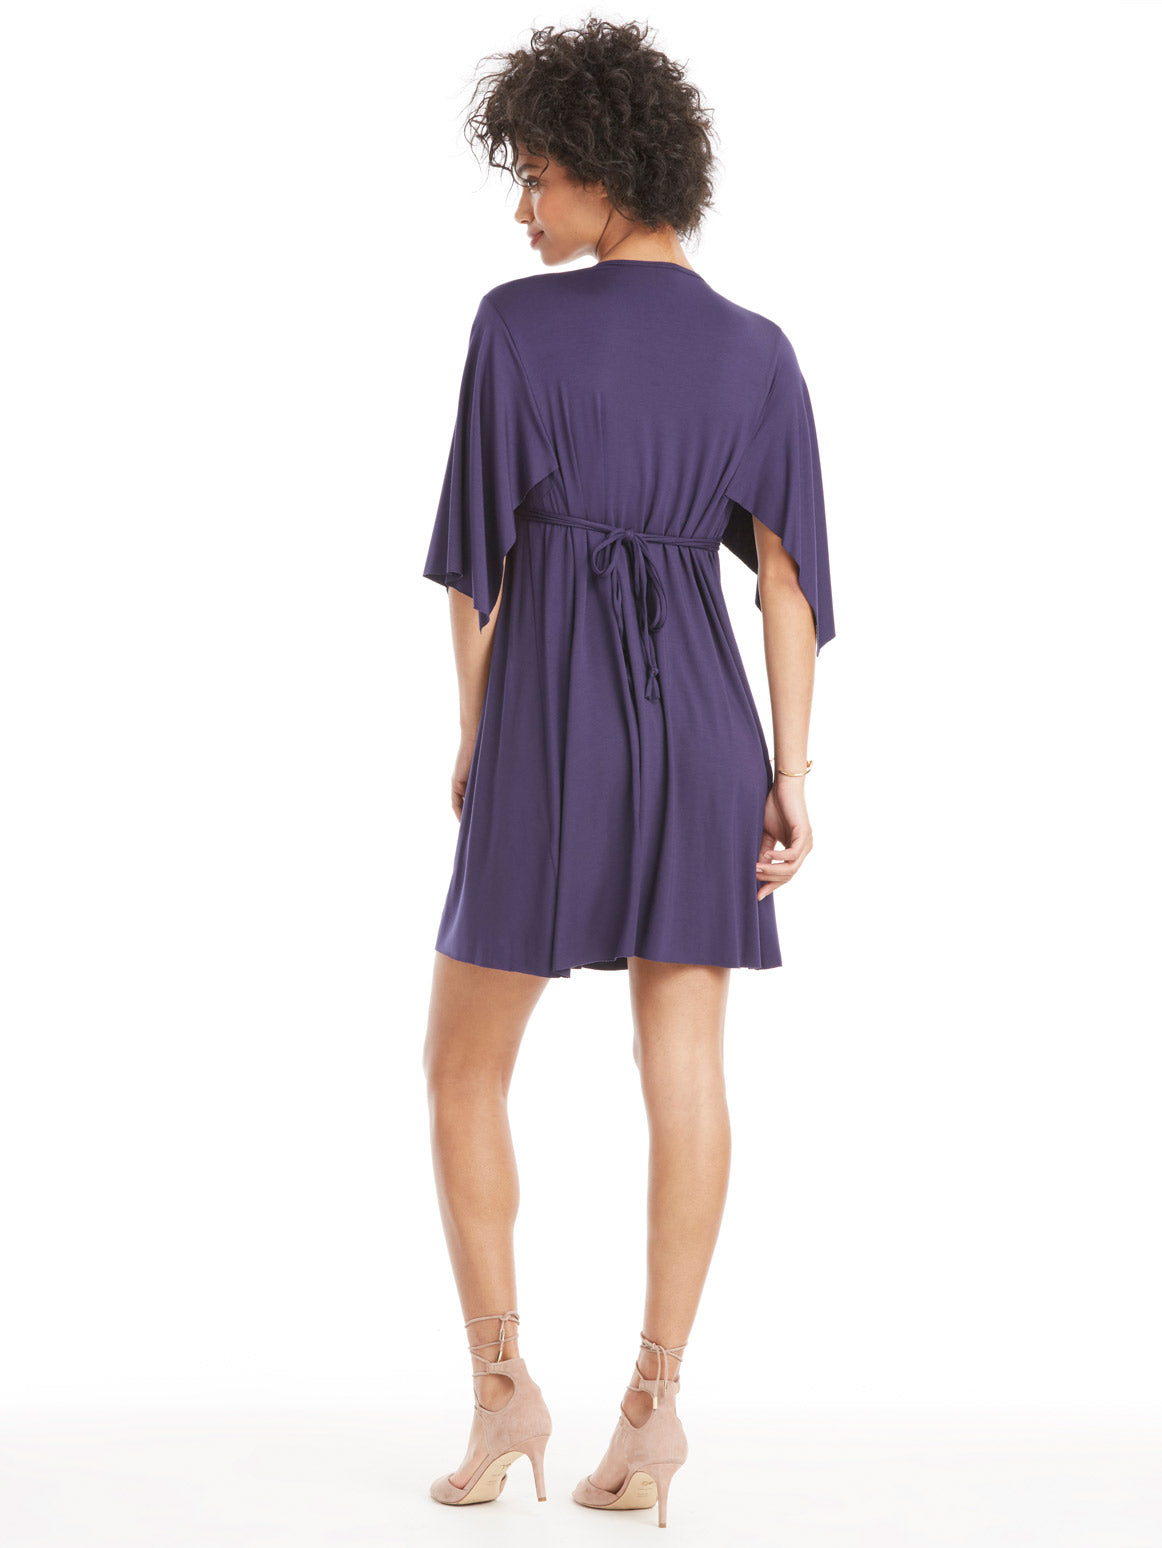 Rachel Pally Mini Caftan - Jupiter | TILDEN